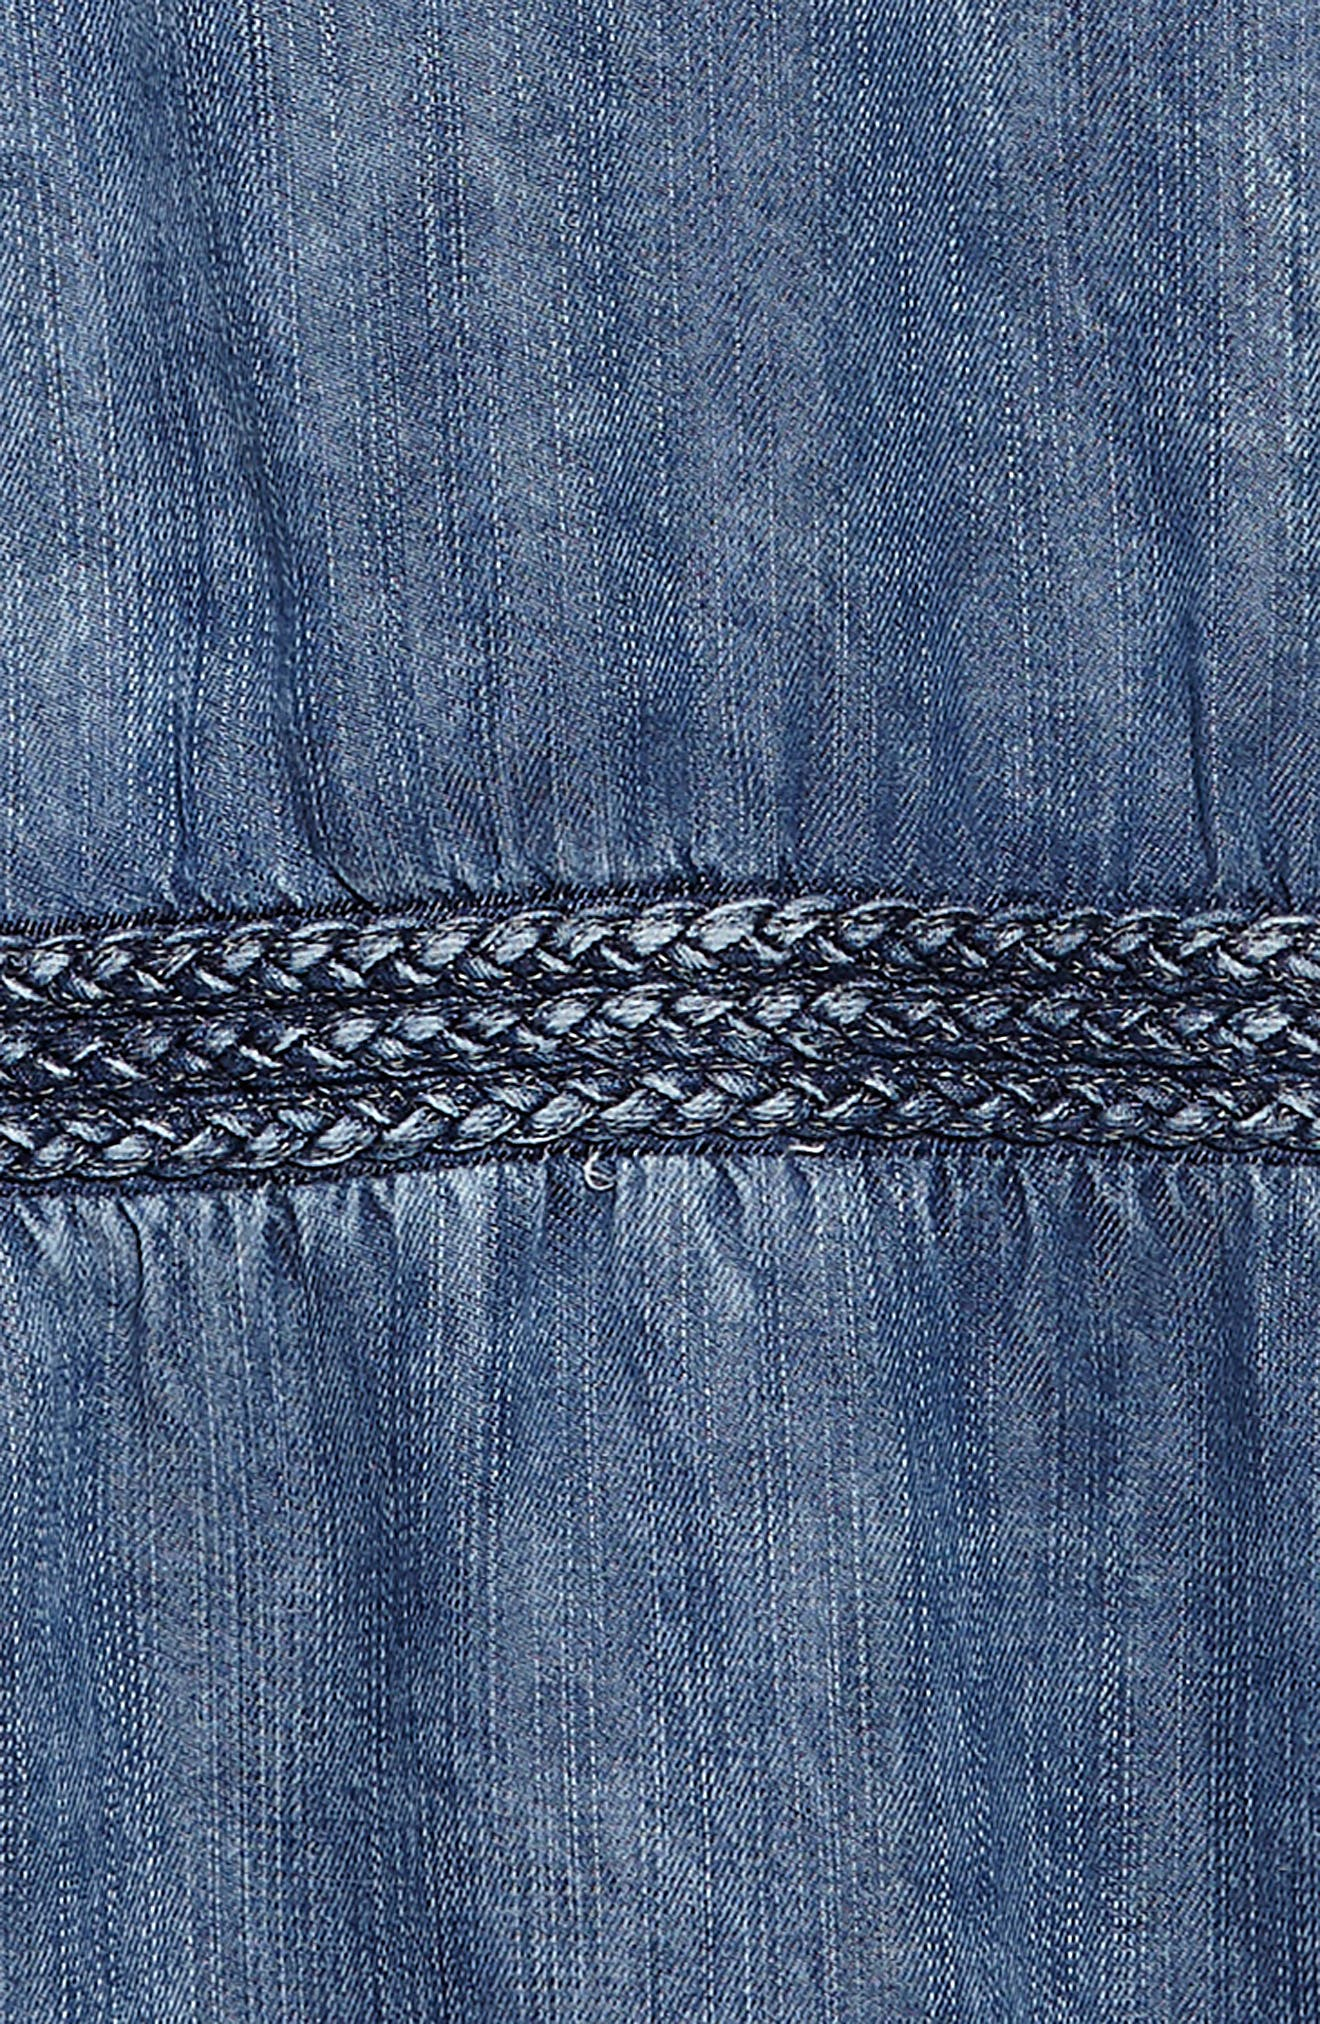 Braided Chambray Dress,                             Alternate thumbnail 3, color,                             Indigo